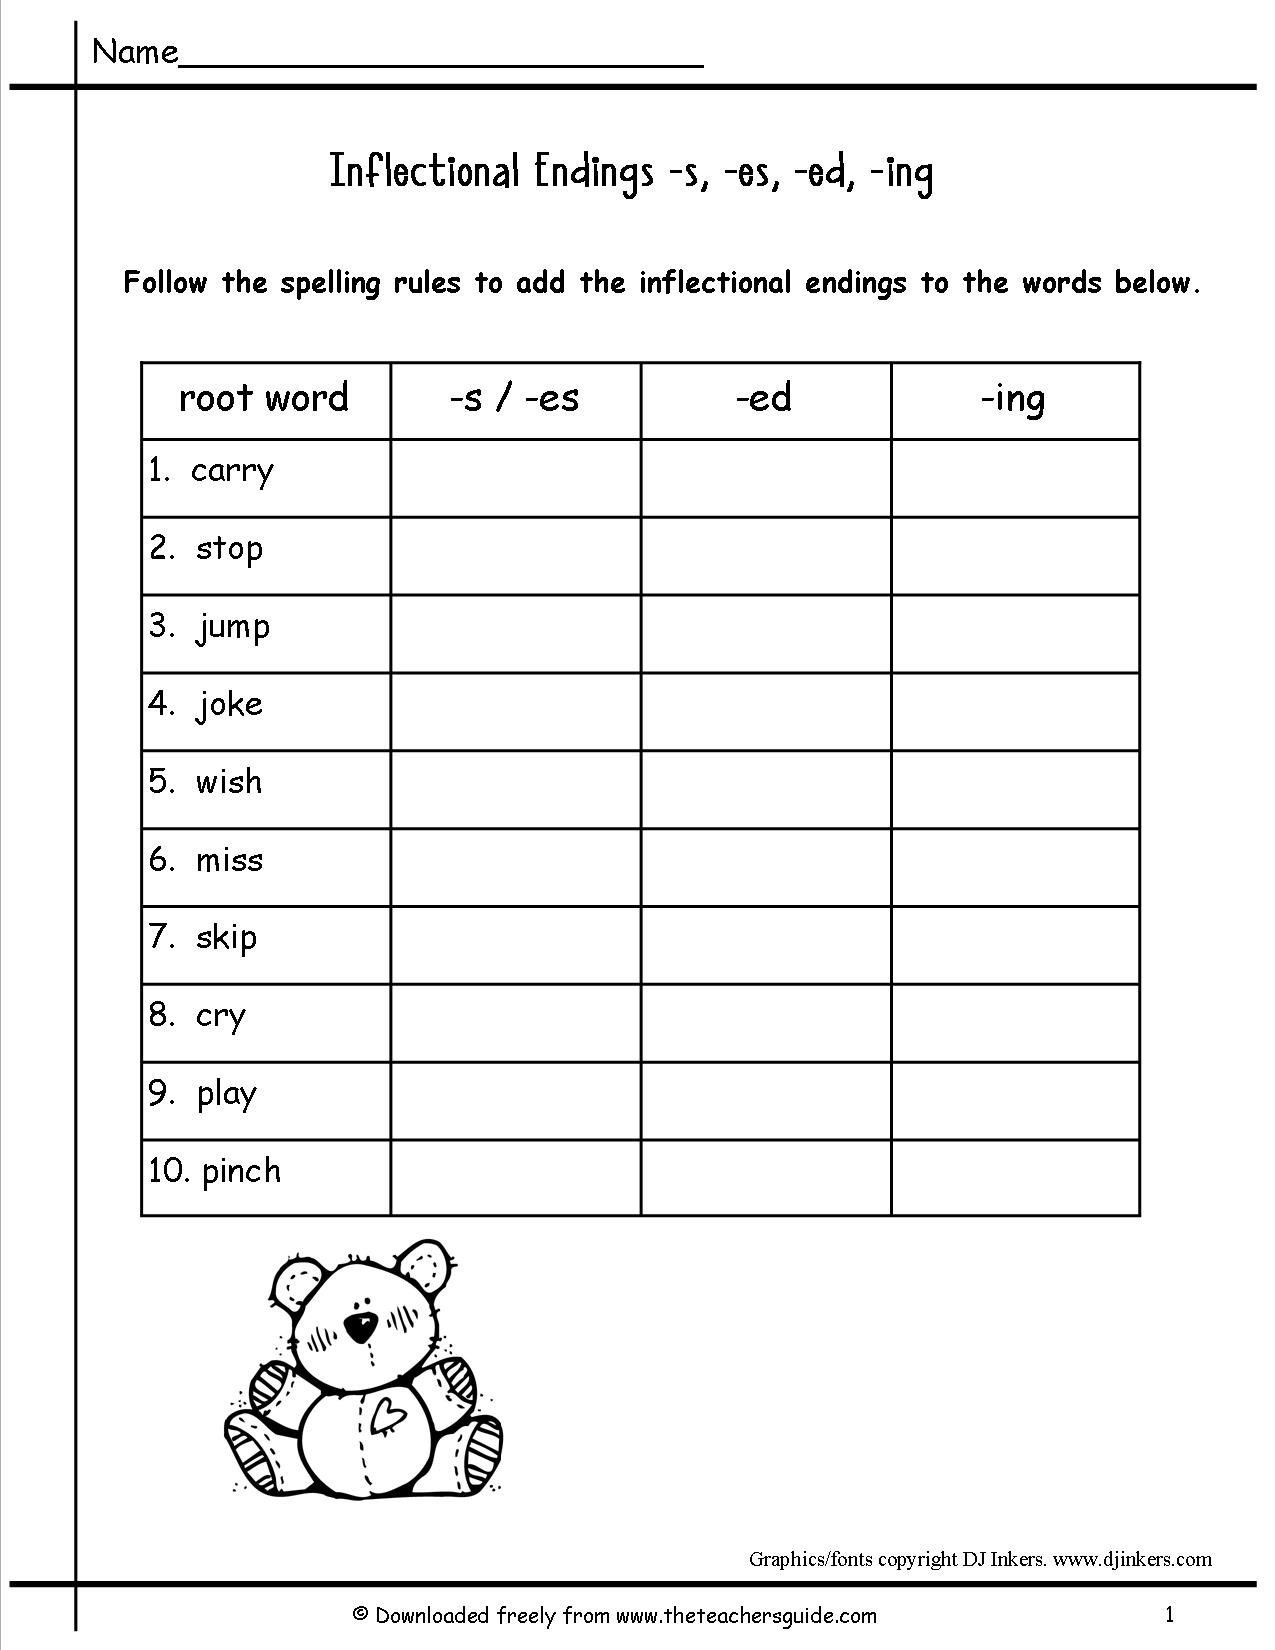 medium resolution of Inflectional Endings Snowman Worksheety   Printable Worksheets and  Activities for Teachers